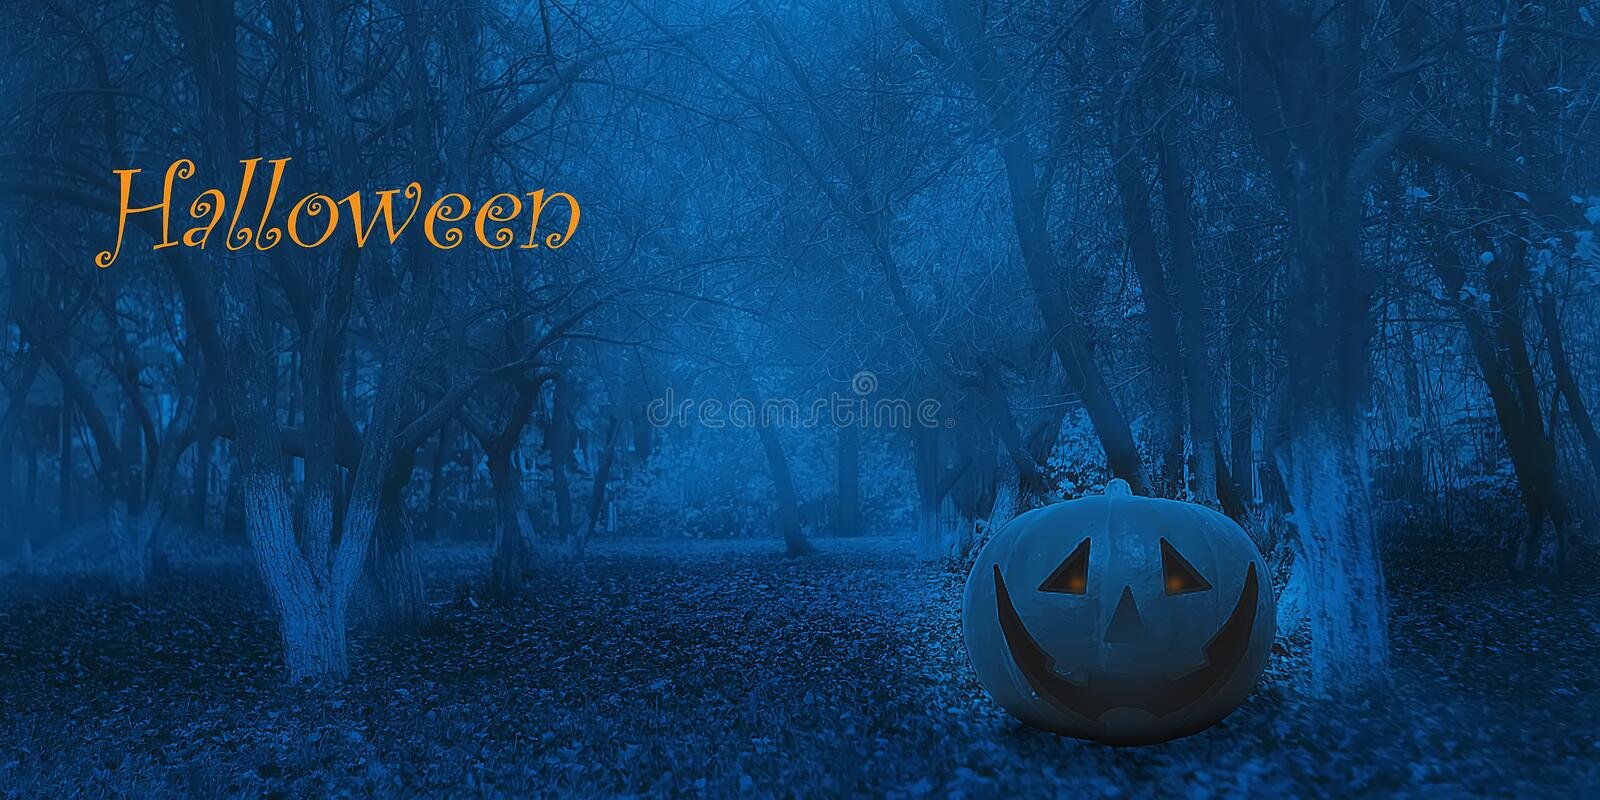 Halloween Mystical Jack O. Pumpkin Lantern in the Forest. Spooky Halloween Poster. Halloween background wallpaper with pumpkin. Jack lantern. The sinister eyes royalty free stock photo